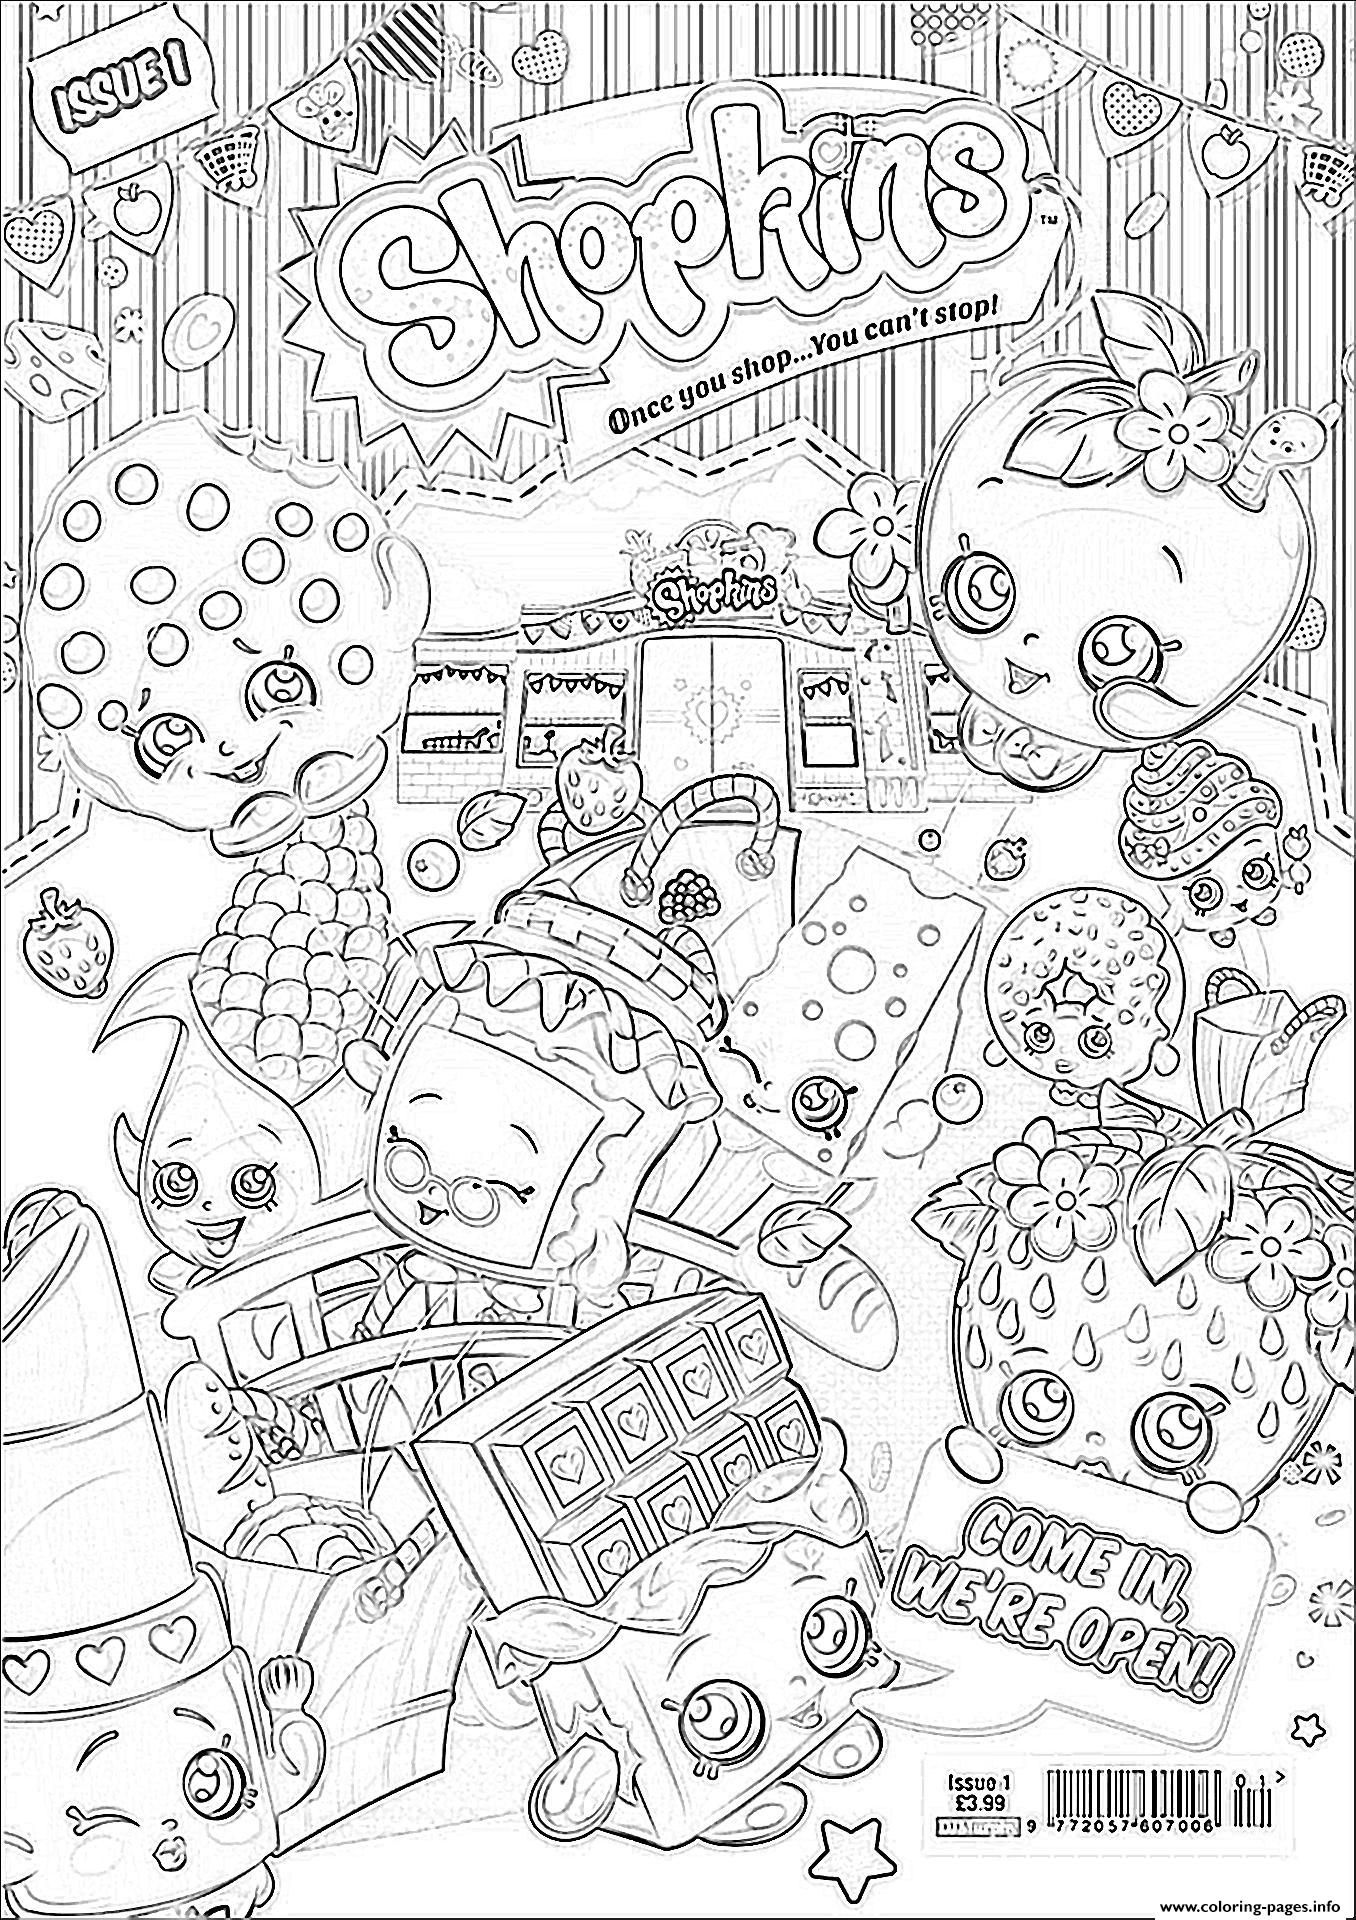 Shopkins coloring pages polly polish - Print Shopkins We Are Open Coloring Pages